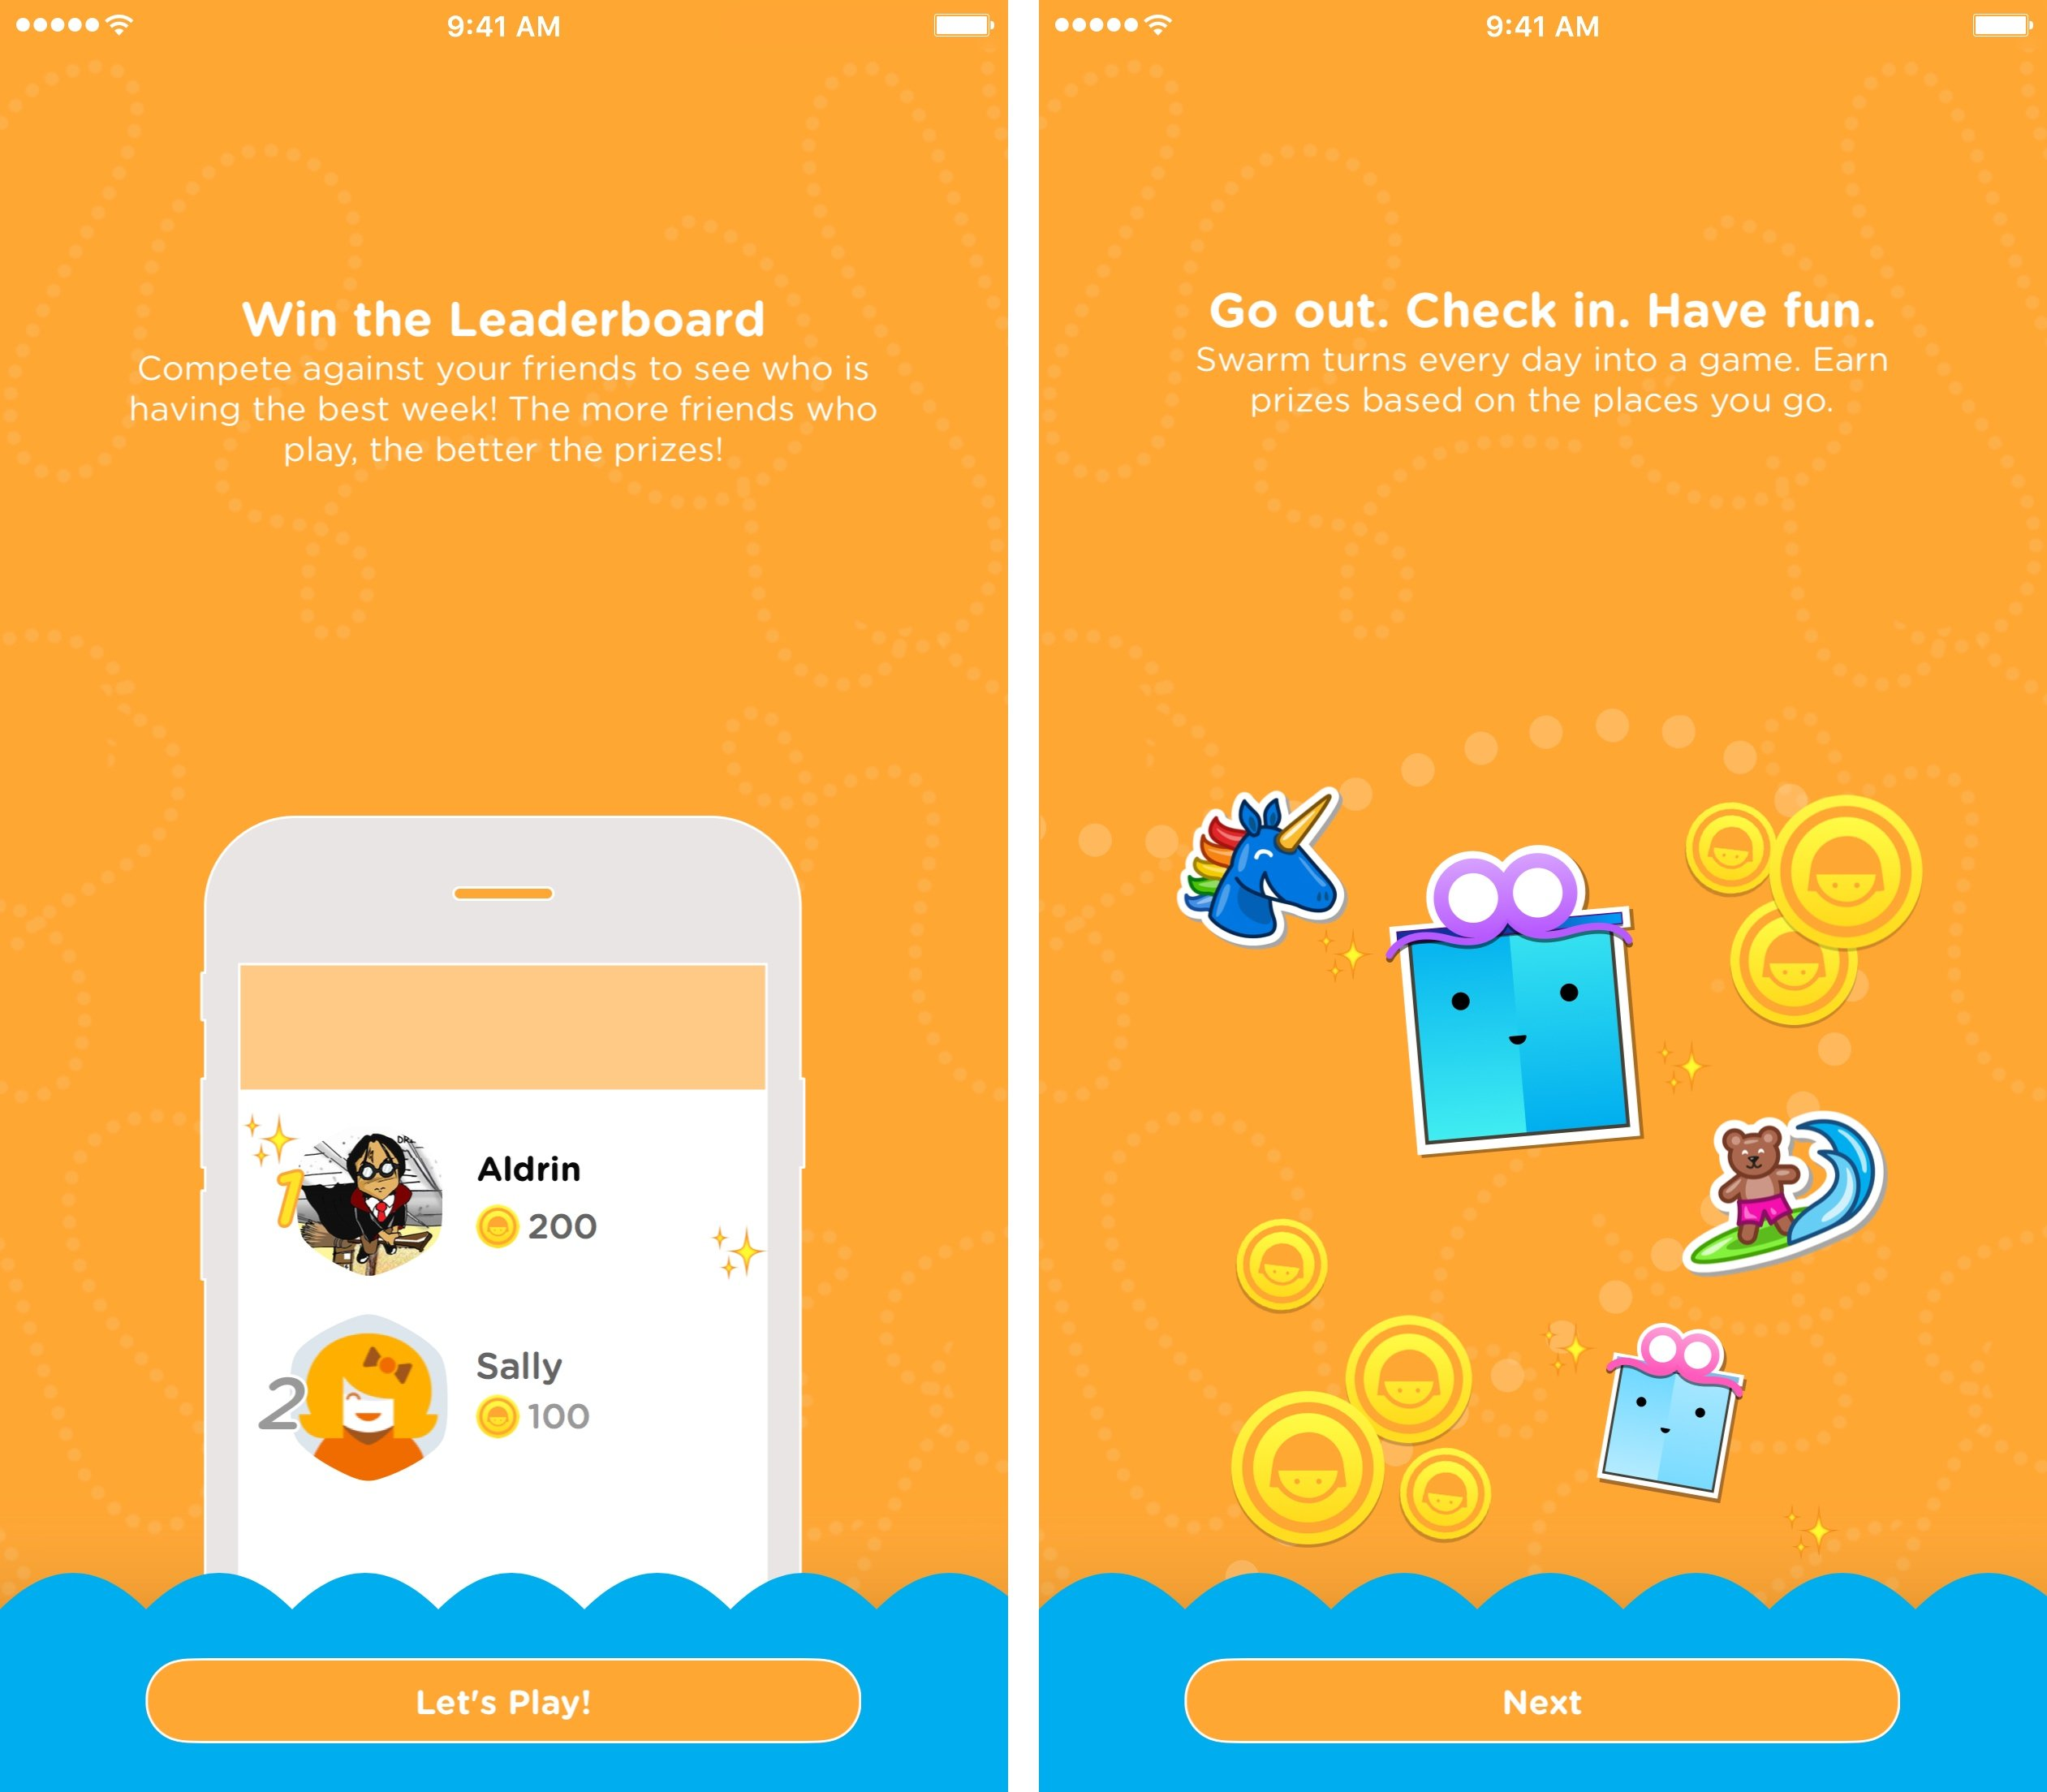 Swarm coins and leaderboards